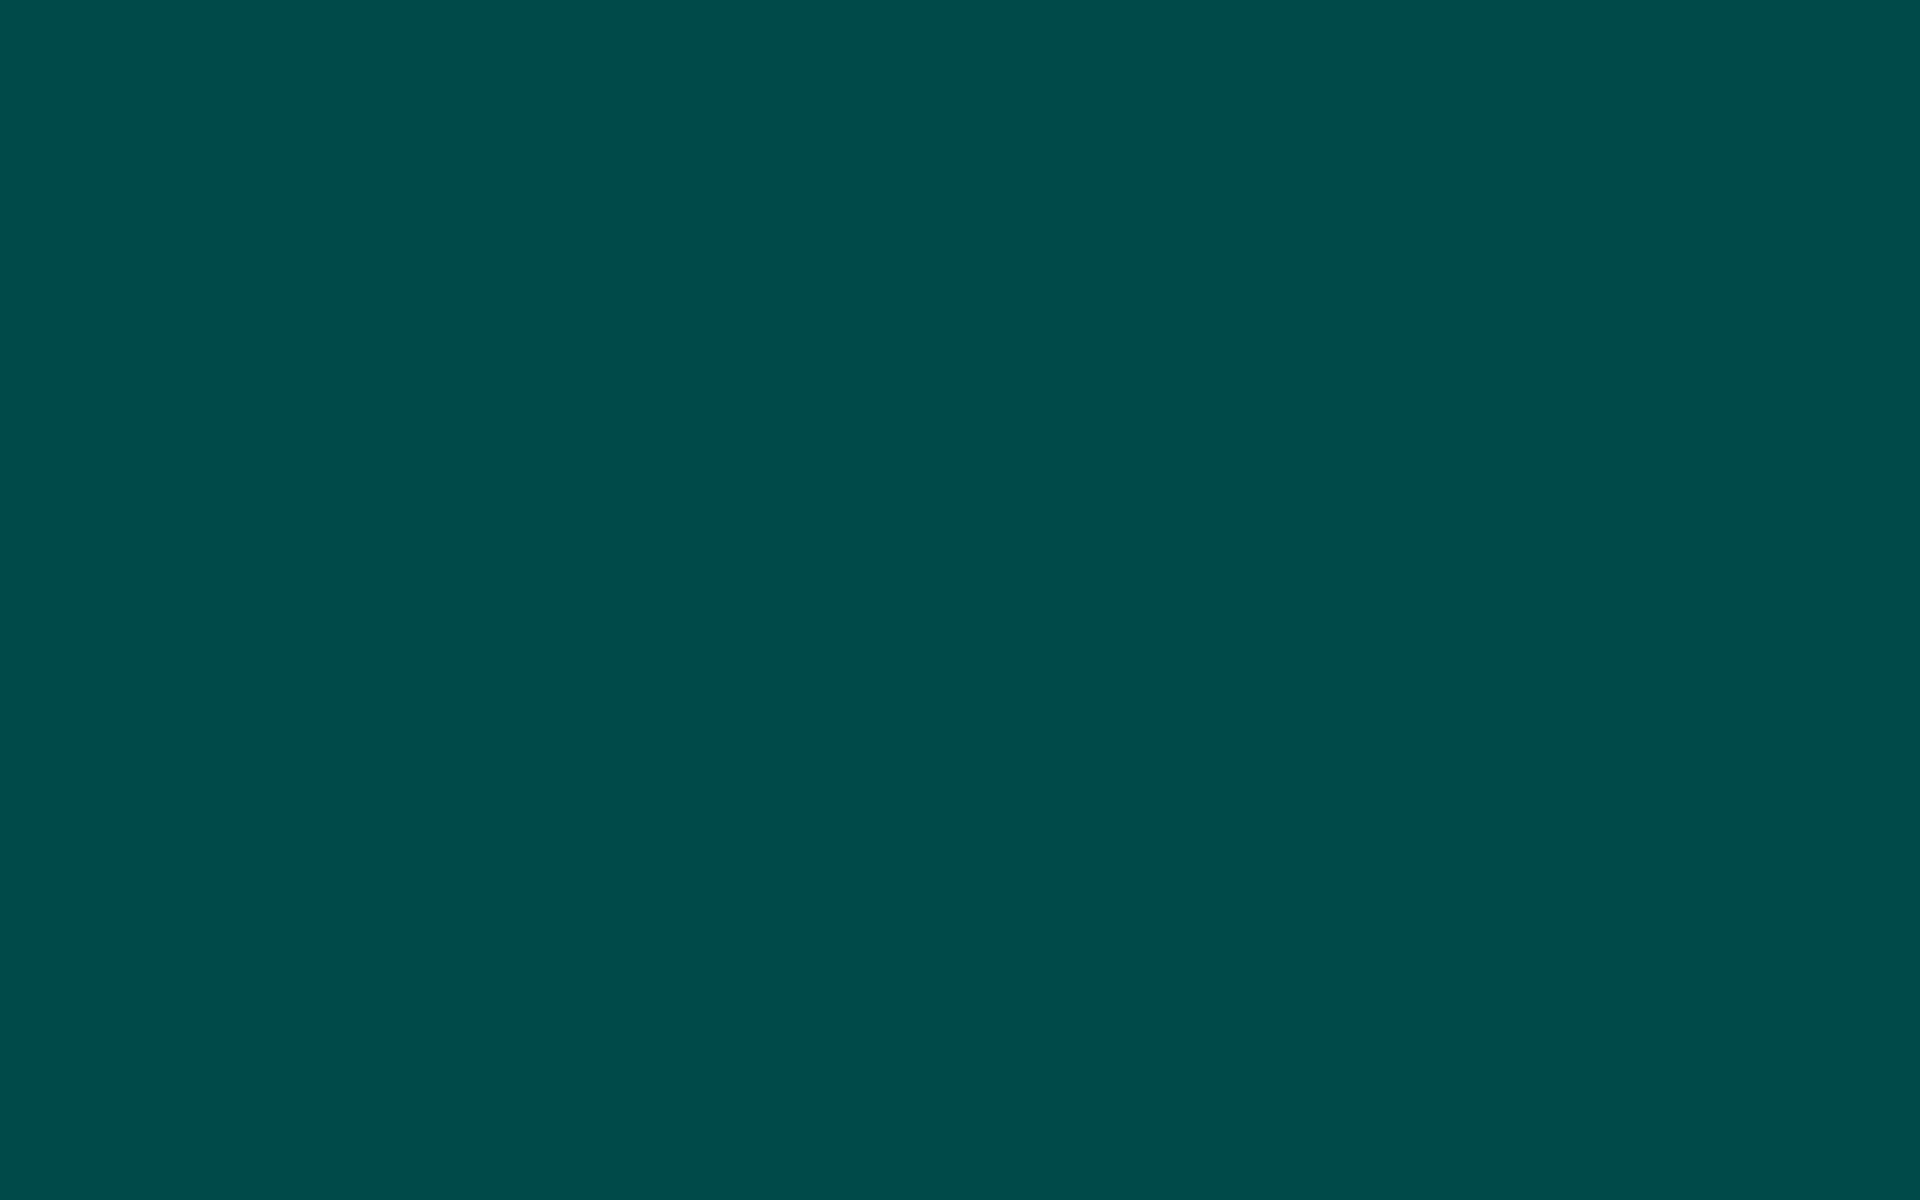 1920x1200 Deep Jungle Green Solid Color Background